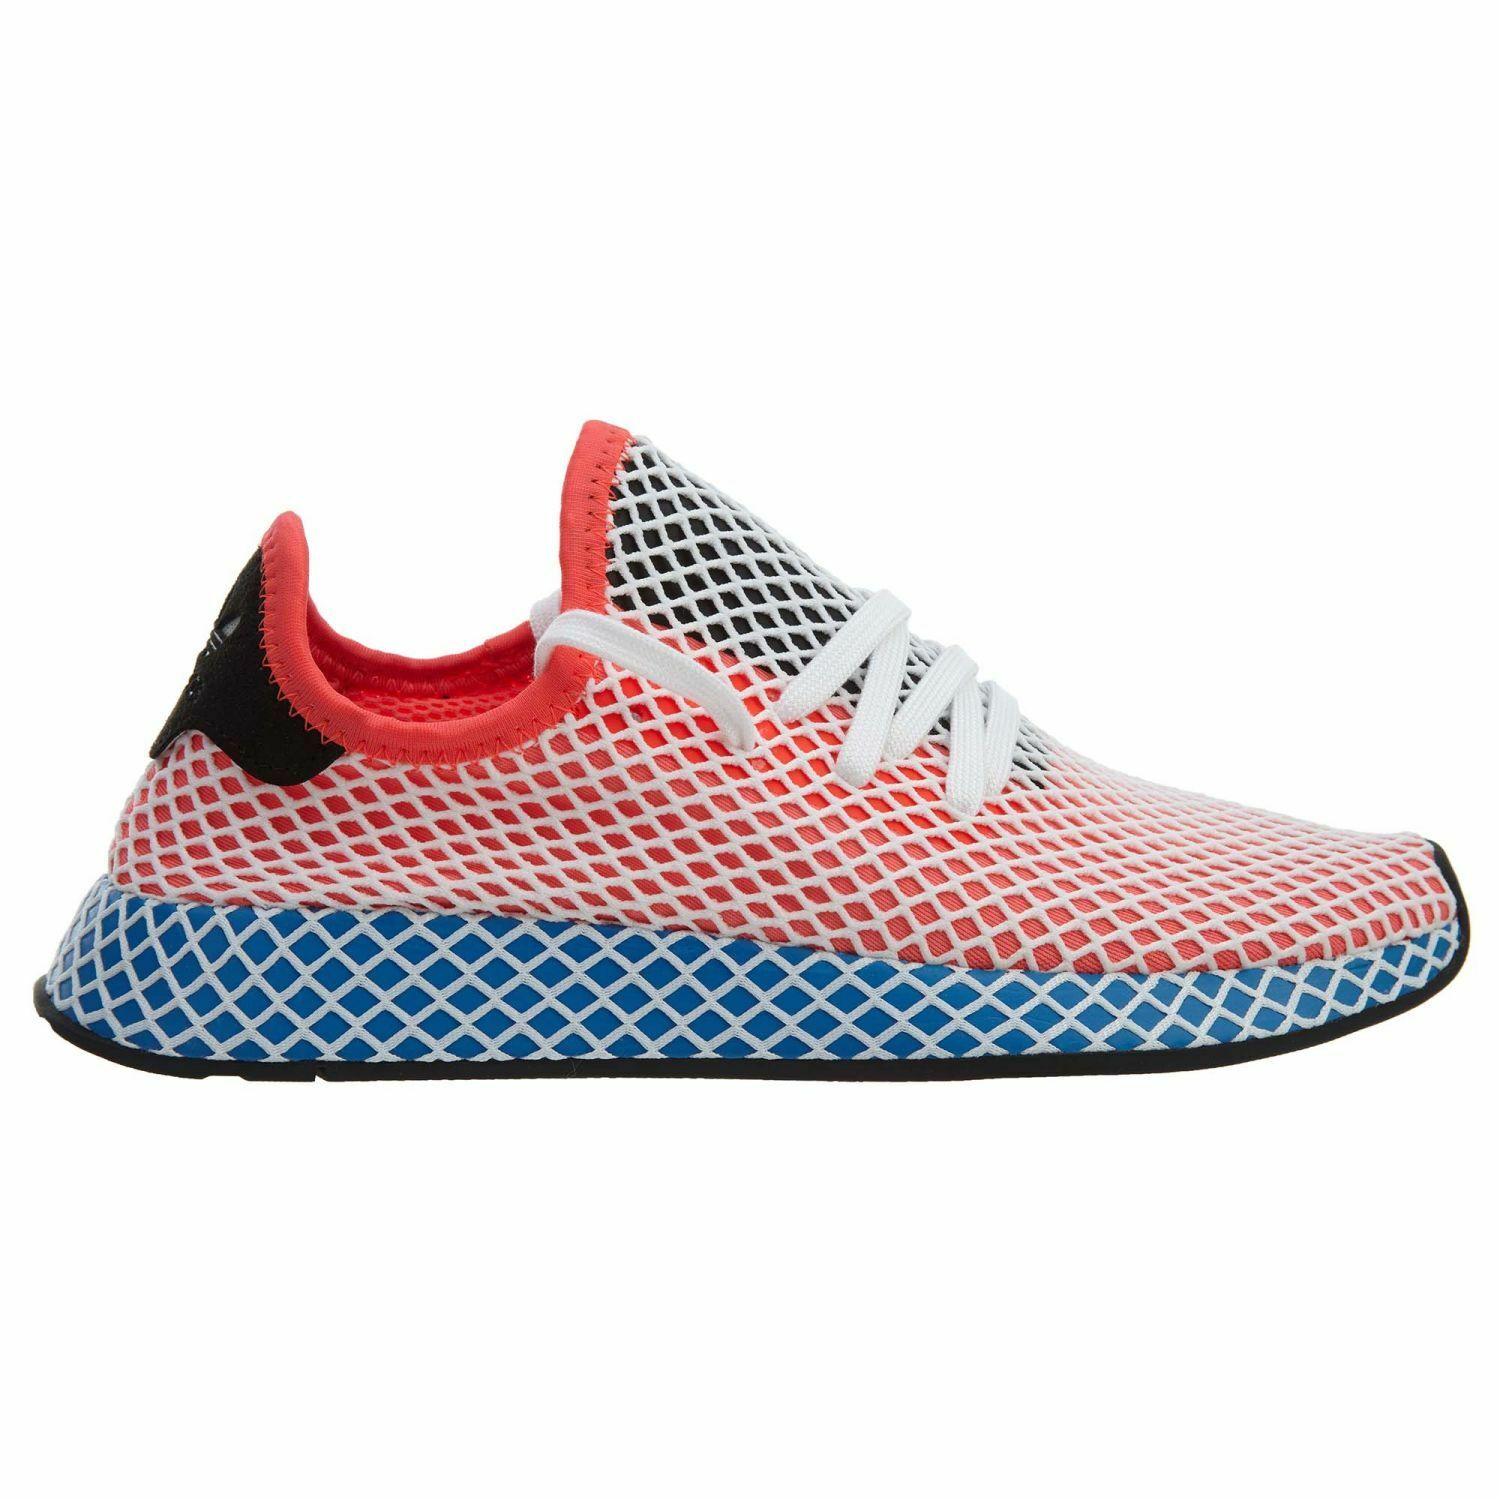 size 40 90ab7 1ae21 Adidas Deerupt Runner Mens CQ2624 Red Blue Blue Blue Black White Running  Shoes Size 9 873ada